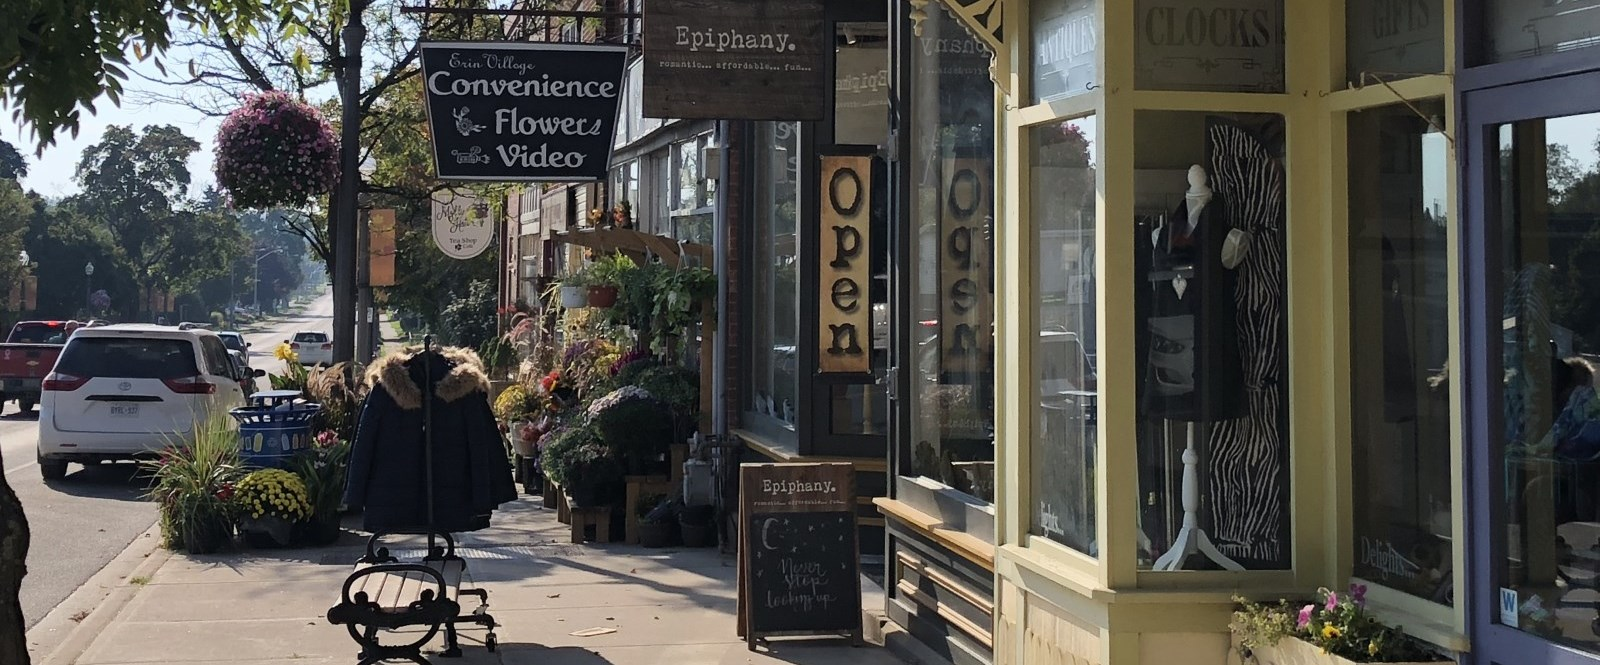 downtown streetscape with flowers in Erin